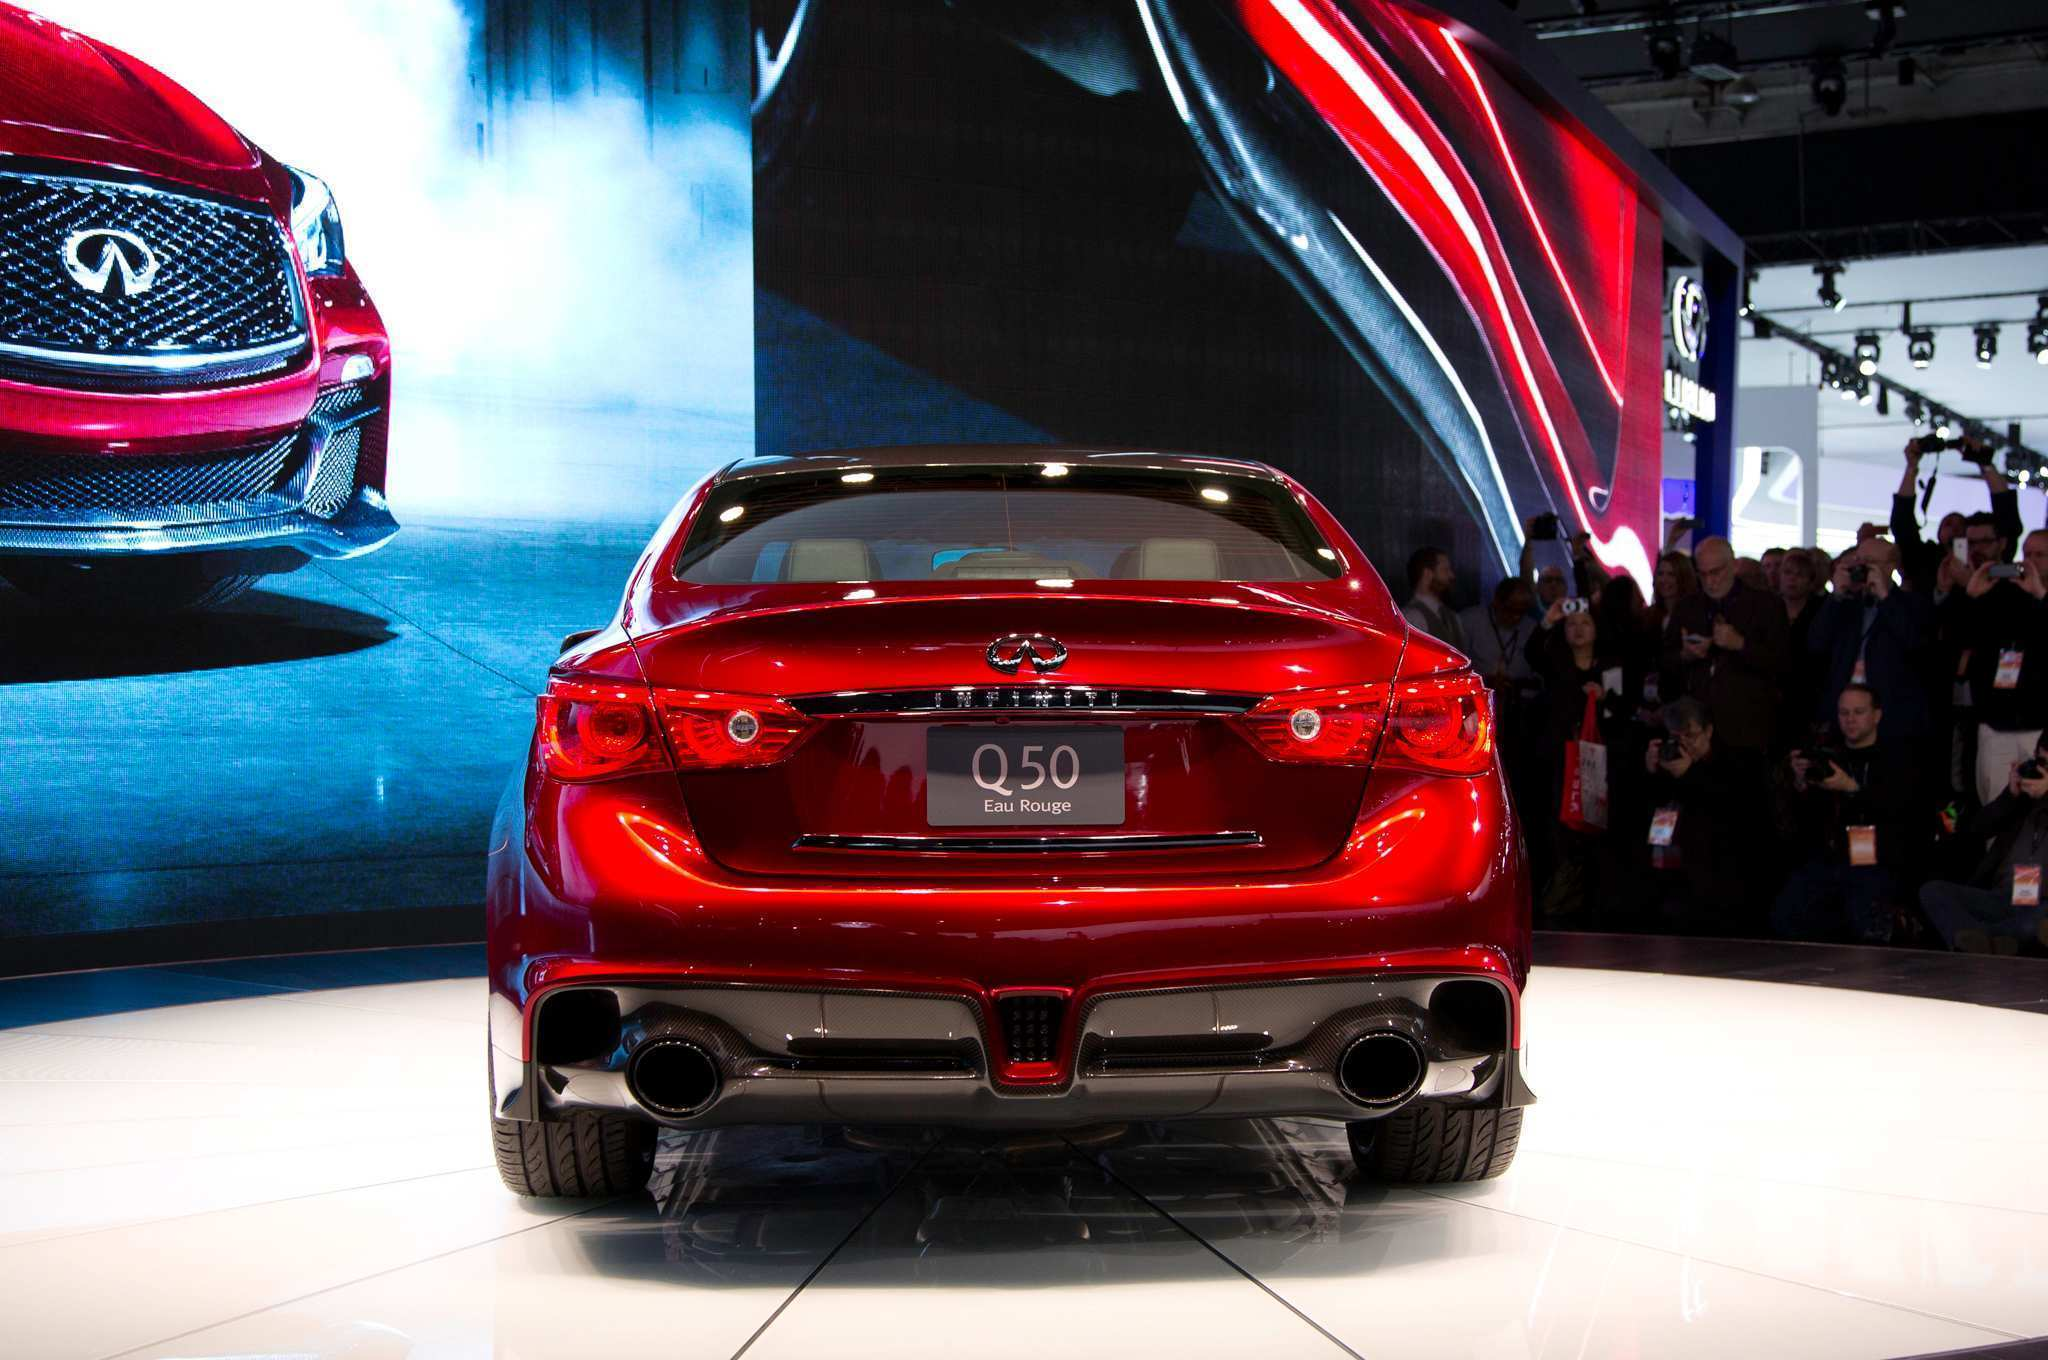 52 A 2019 Infiniti Q50 Coupe Eau Rouge Release Date And Concept